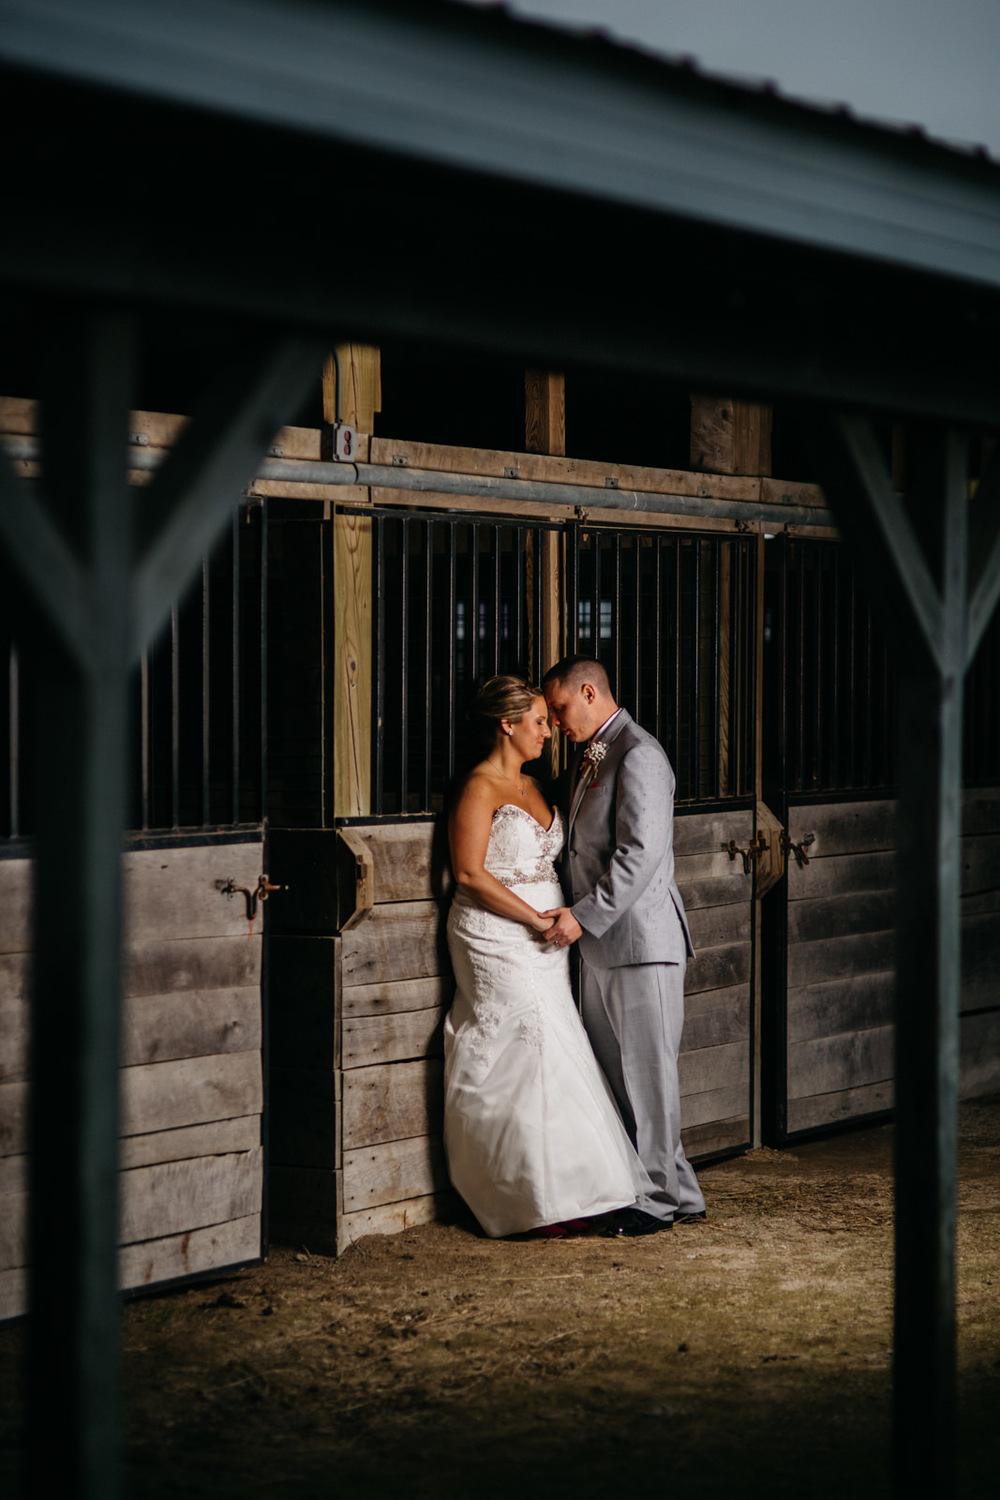 Wedding Photography in Horse Stables at Fulton County Fairgrounds